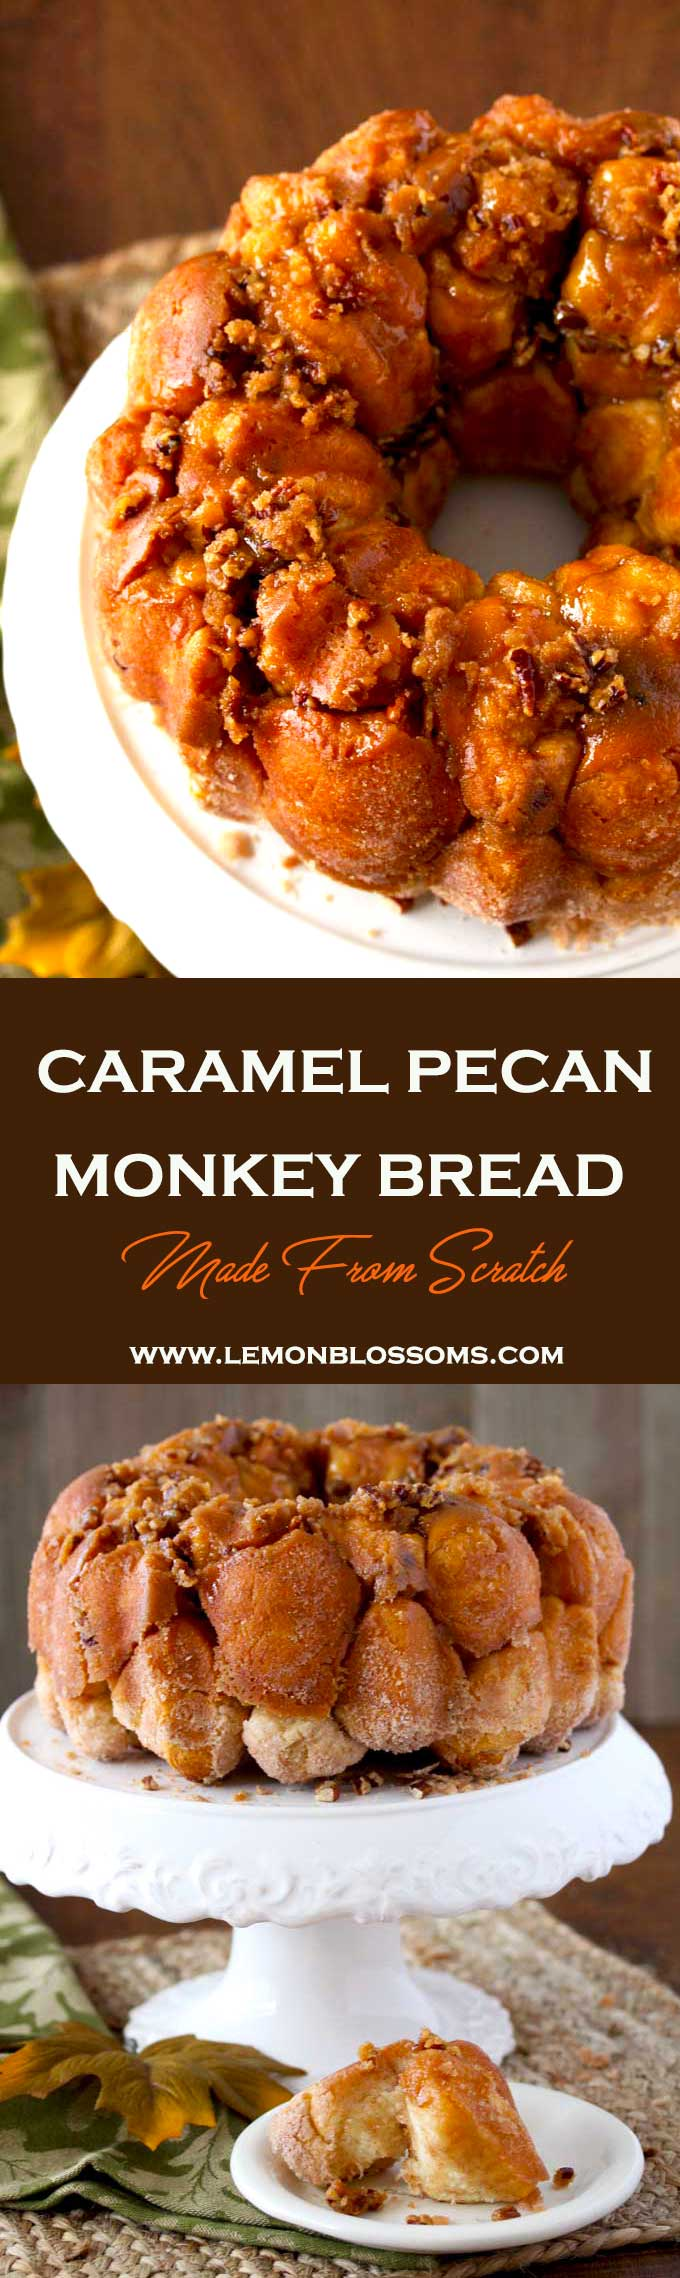 This homemade Caramel Pecan Monkey Bread is chewy, sweet, sticky and made from scratch! Cinnamon sugar dough balls baked in gooey caramel-pecan resulting in a delectable treat!